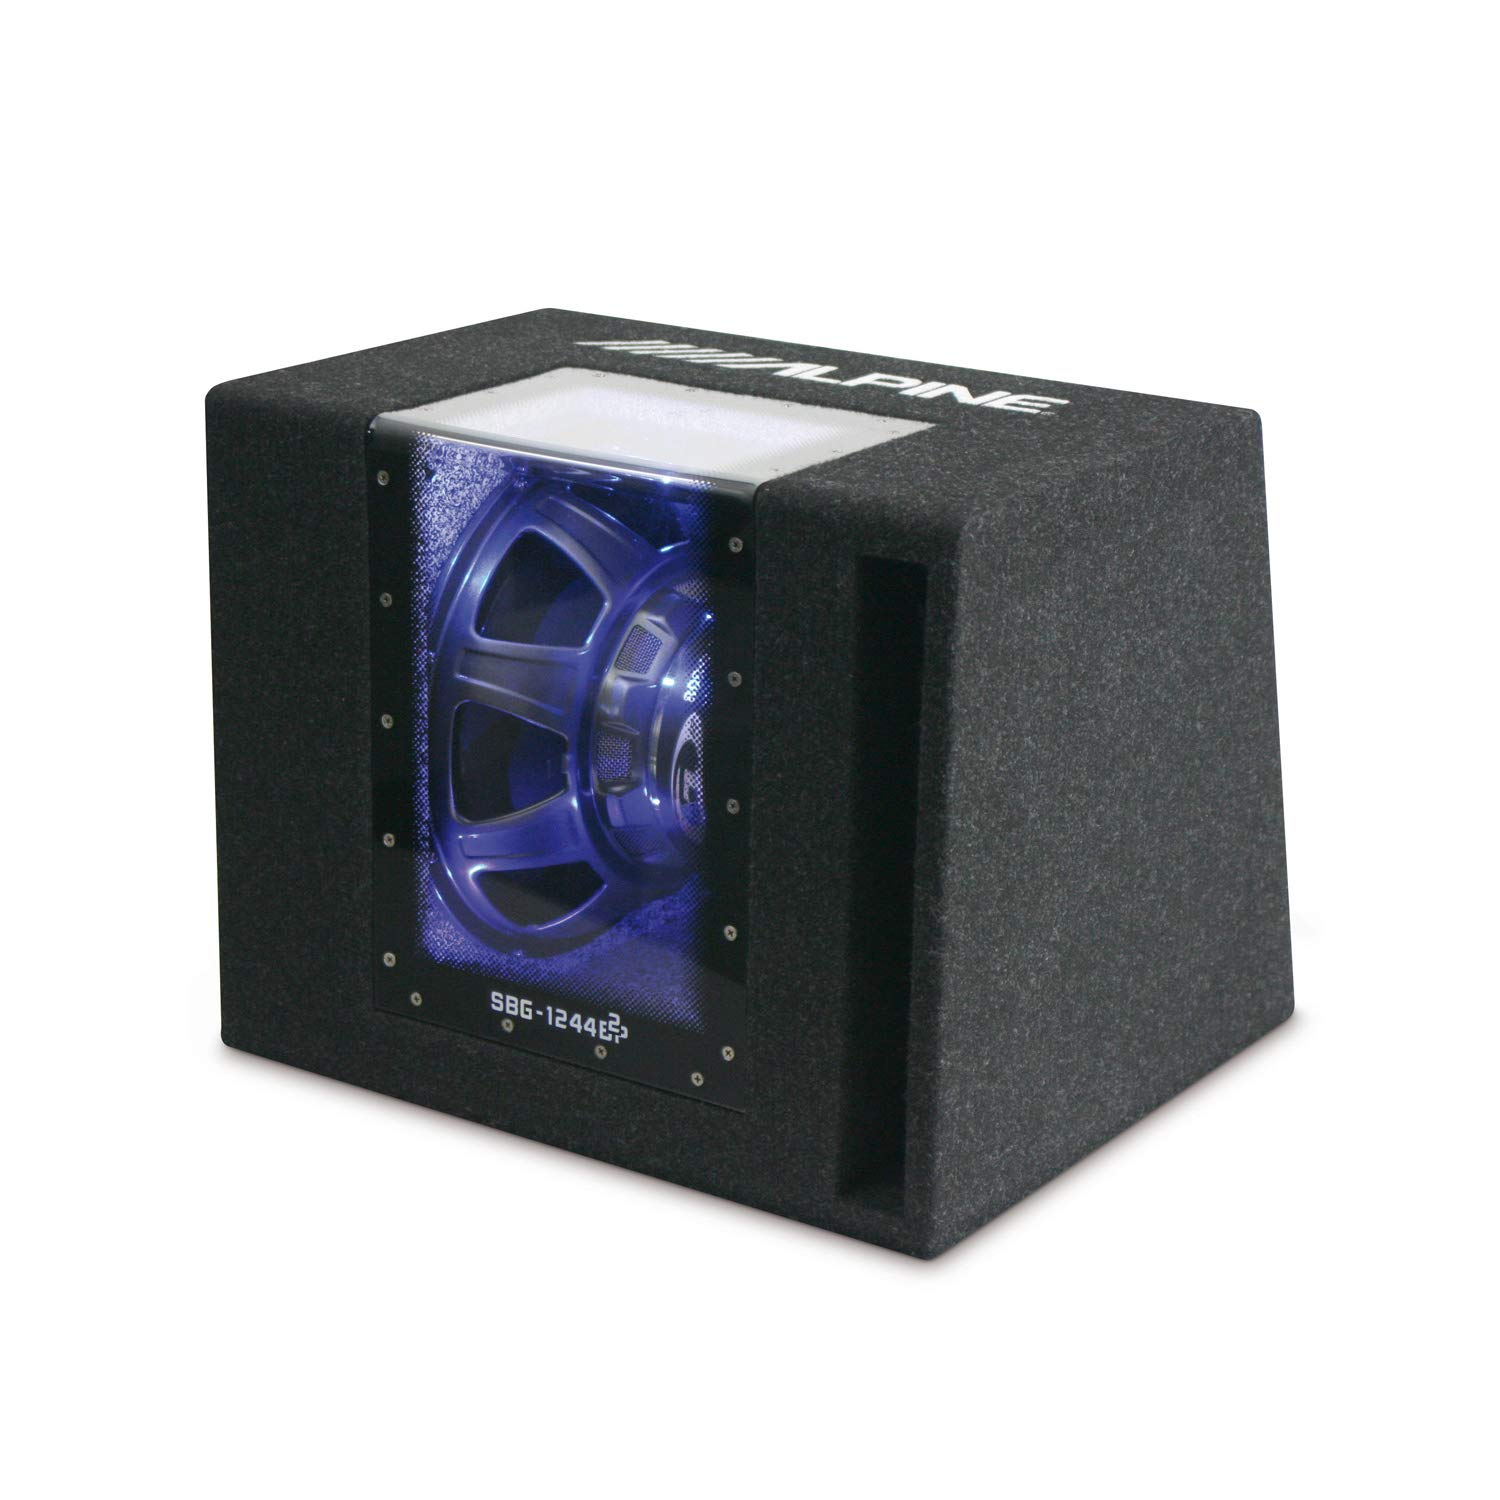 12 Pronto allUso Band-Pass Enclsoure con Subwoofer Alpine SBG 1244BP 30,48 cm